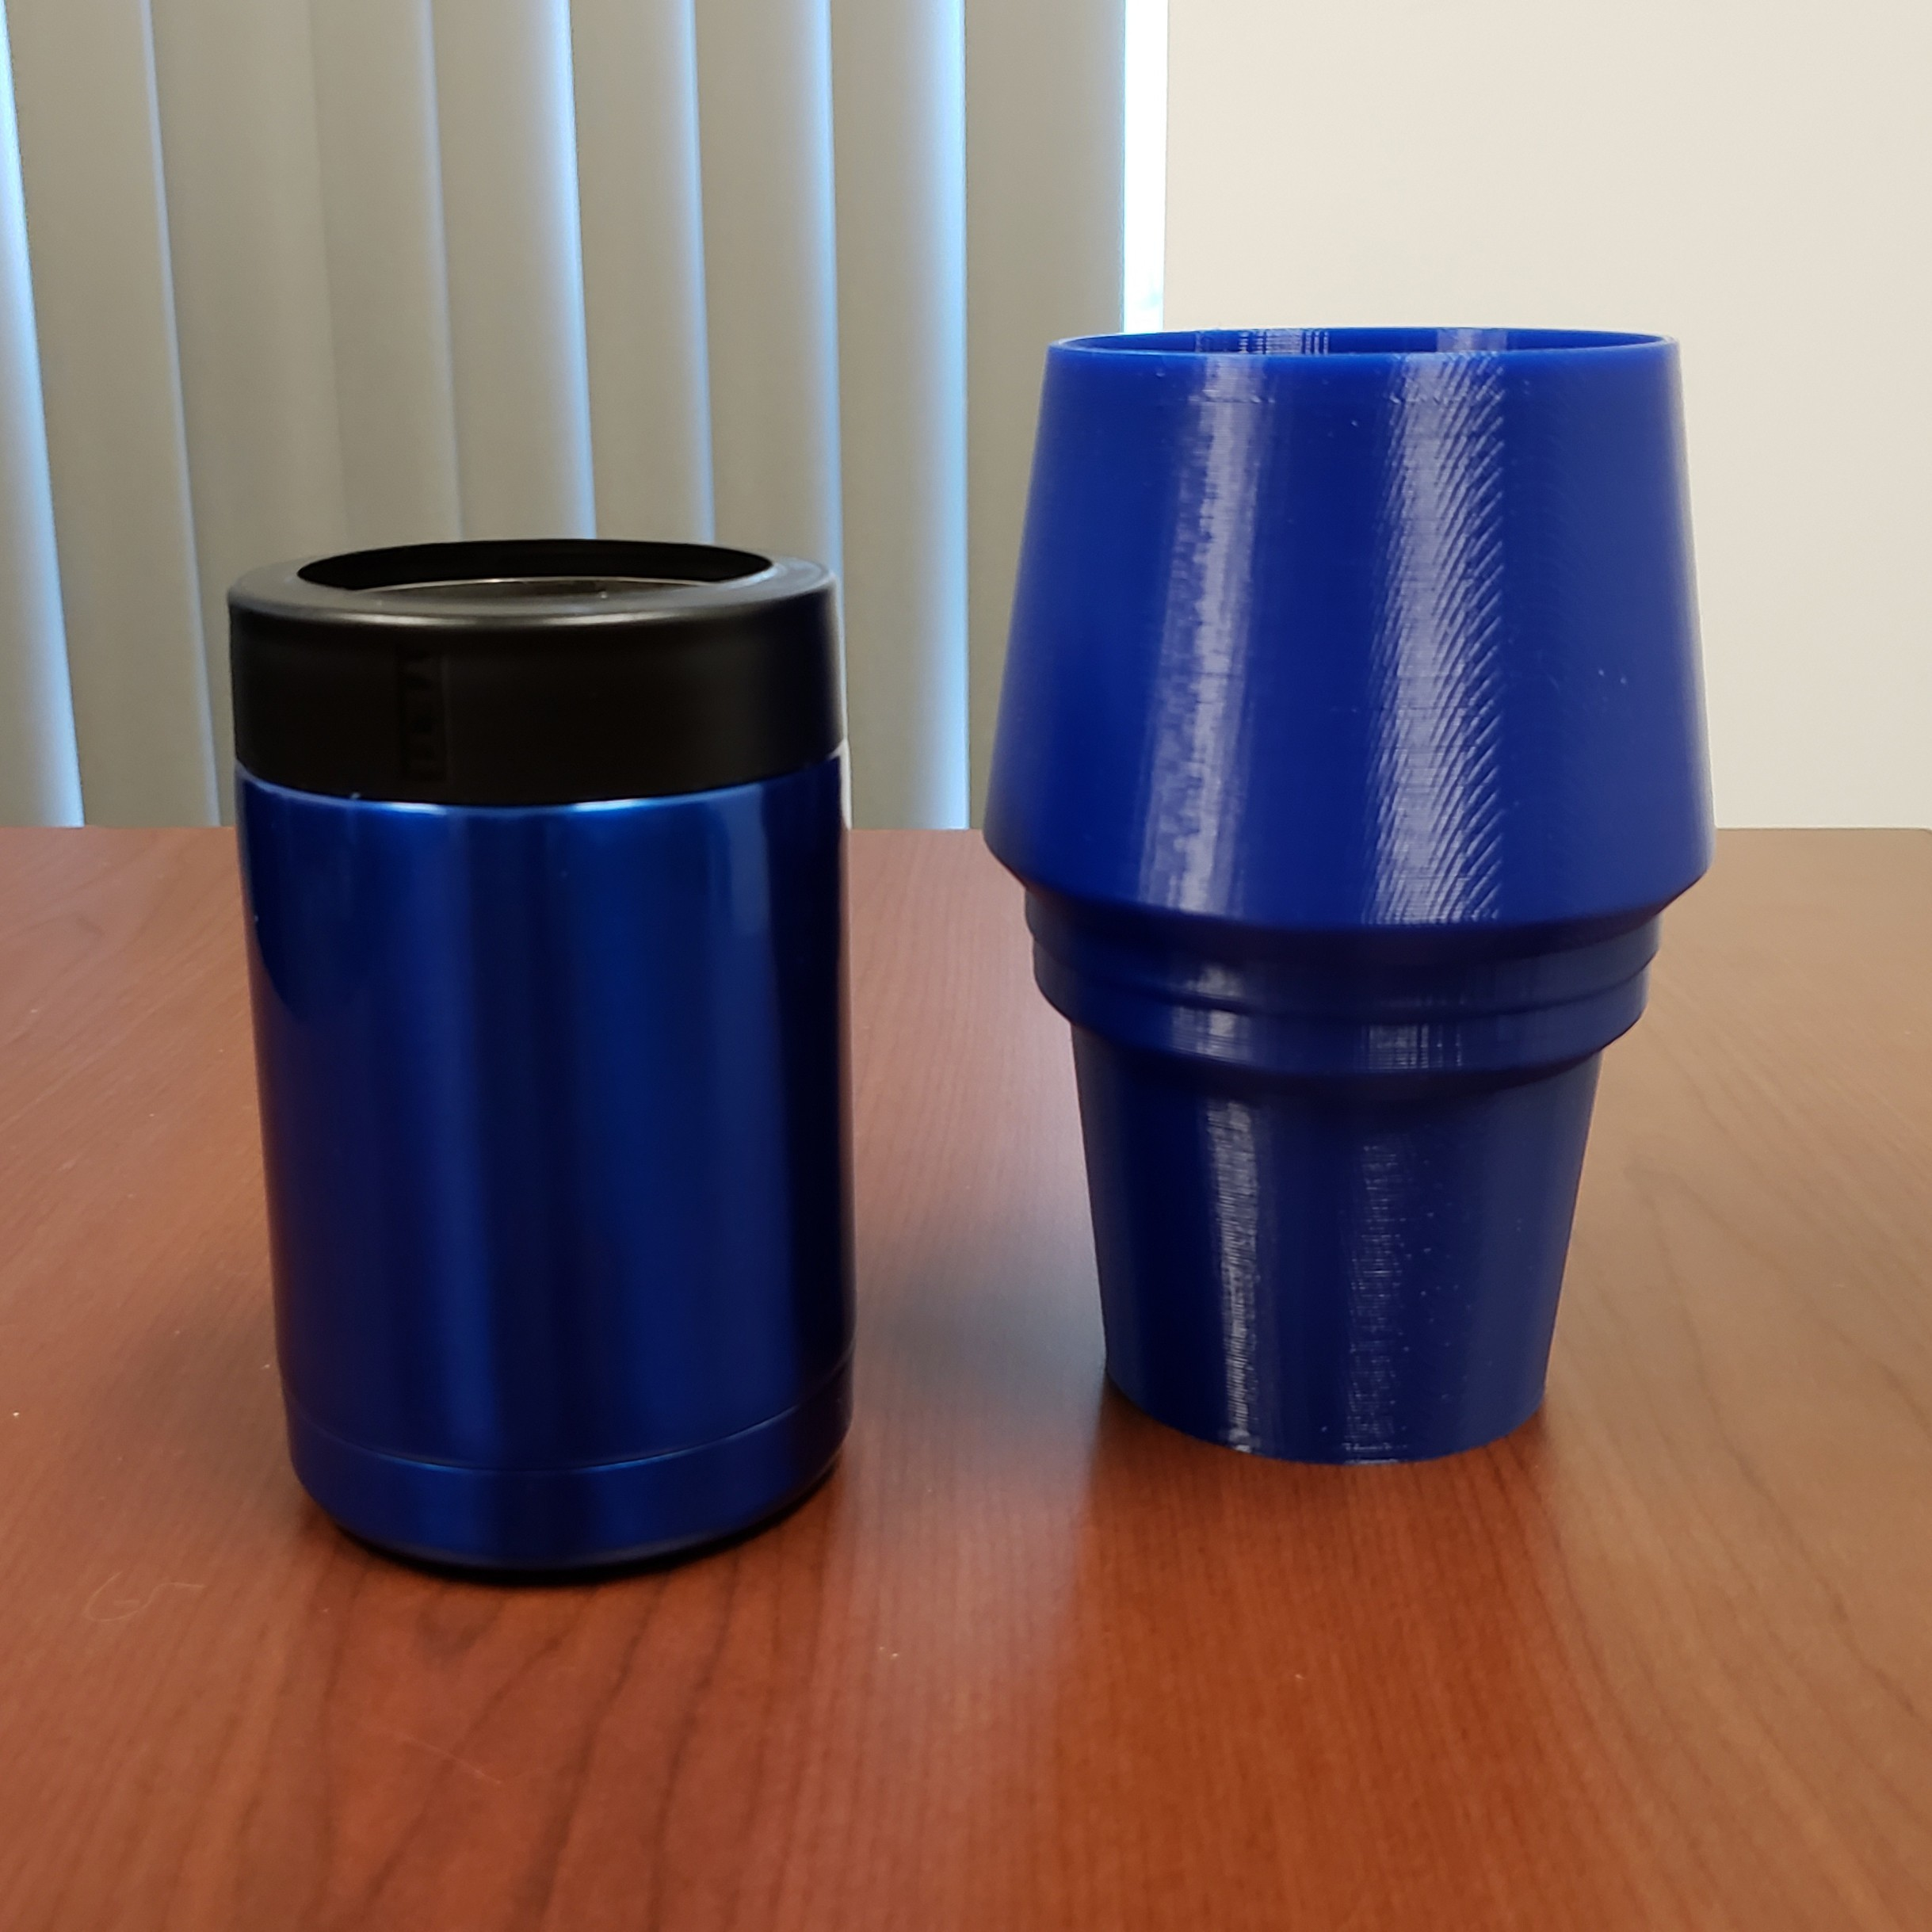 20180817_080418.jpg Download free STL file Yeti Rambler Colster Koozie Cup Holder Adapter • 3D printer object, ThatJoshGuy